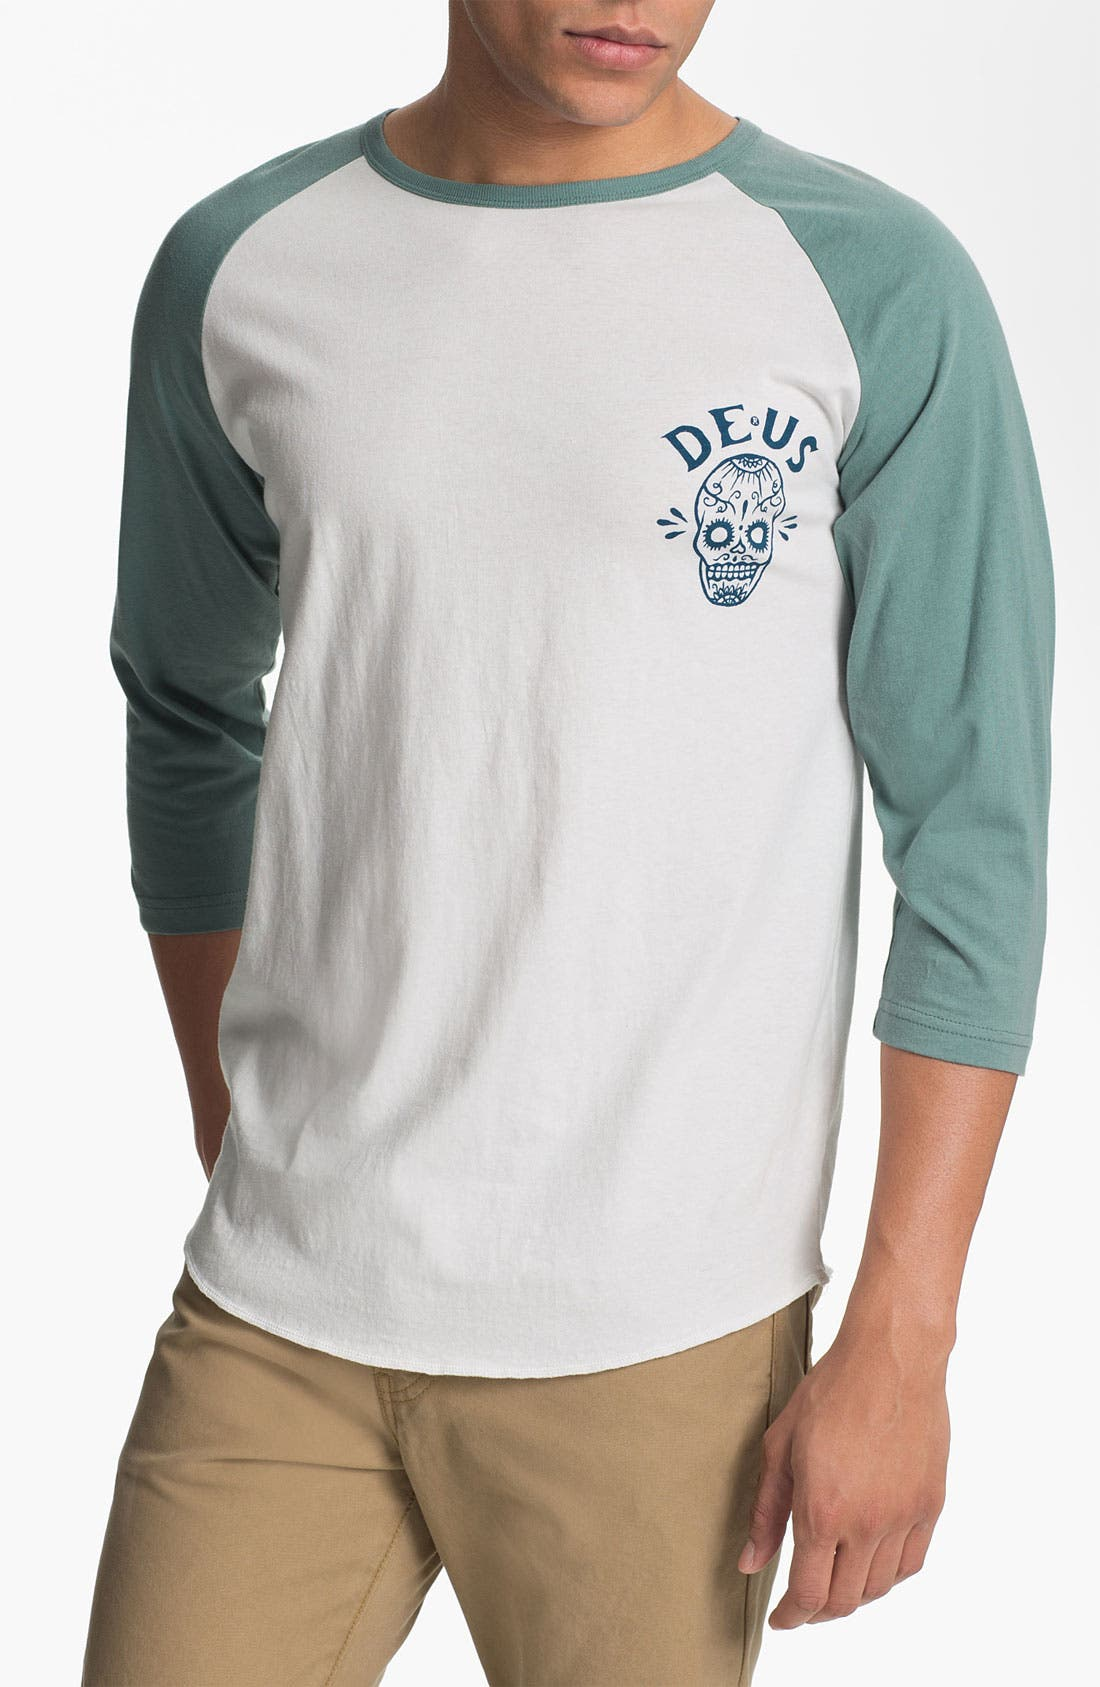 Alternate Image 1 Selected - Deus Ex Machina 'Deus of the Dead' Graphic Baseball T-Shirt